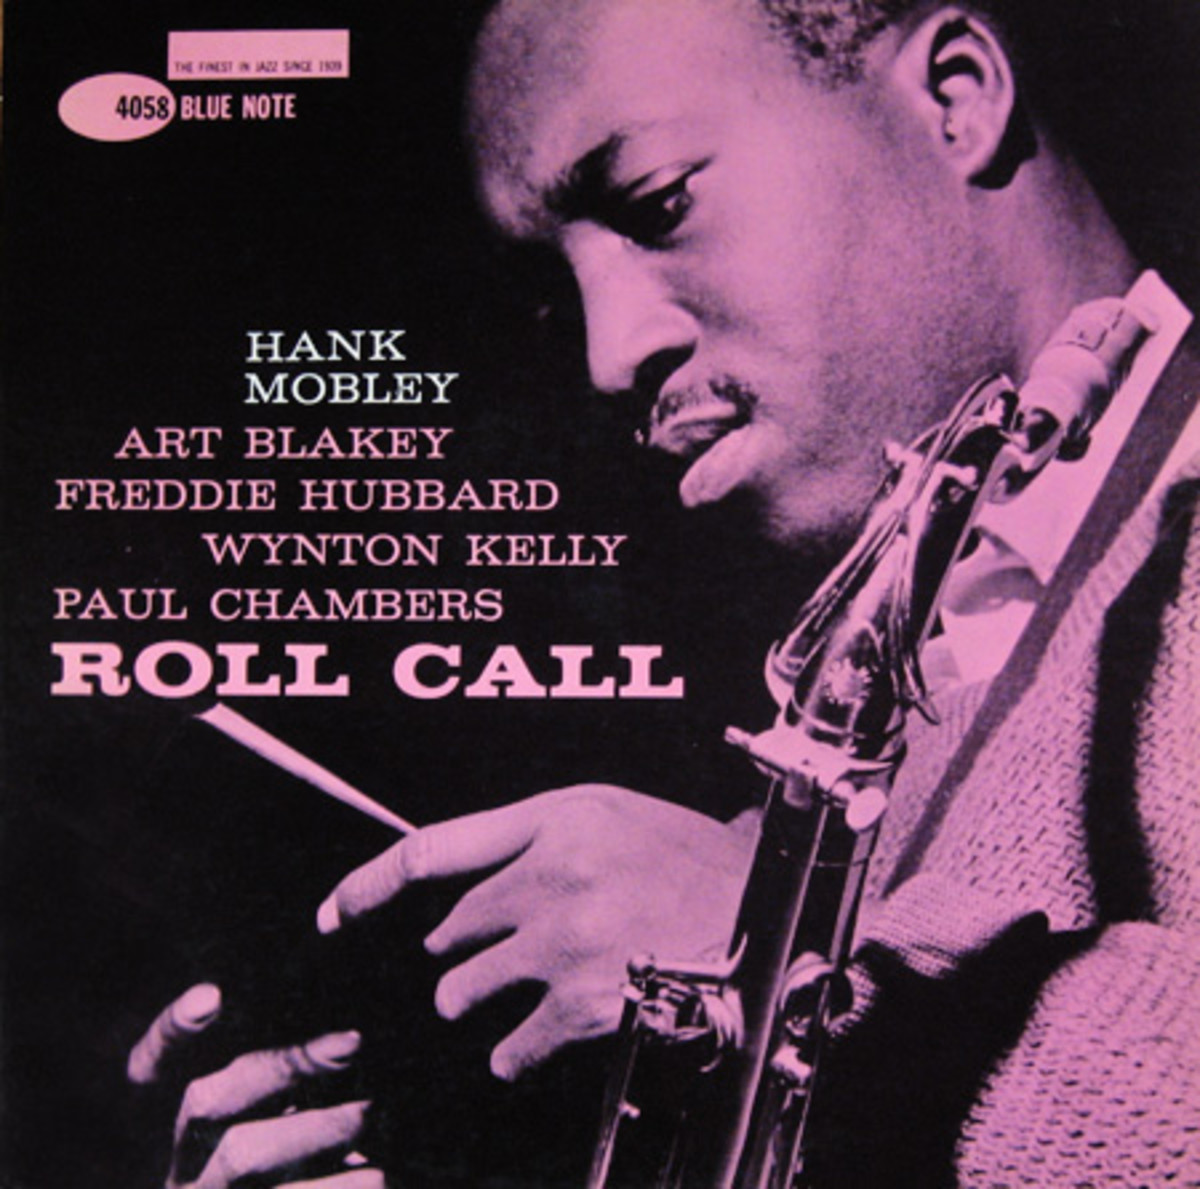 "Hank Mobley ""Roll Call"" Blue Note Records 4058 12"" LP Vinyl Record  (1961) Album Cover Design by Reid Miles   Photo by  Francis Wolf"